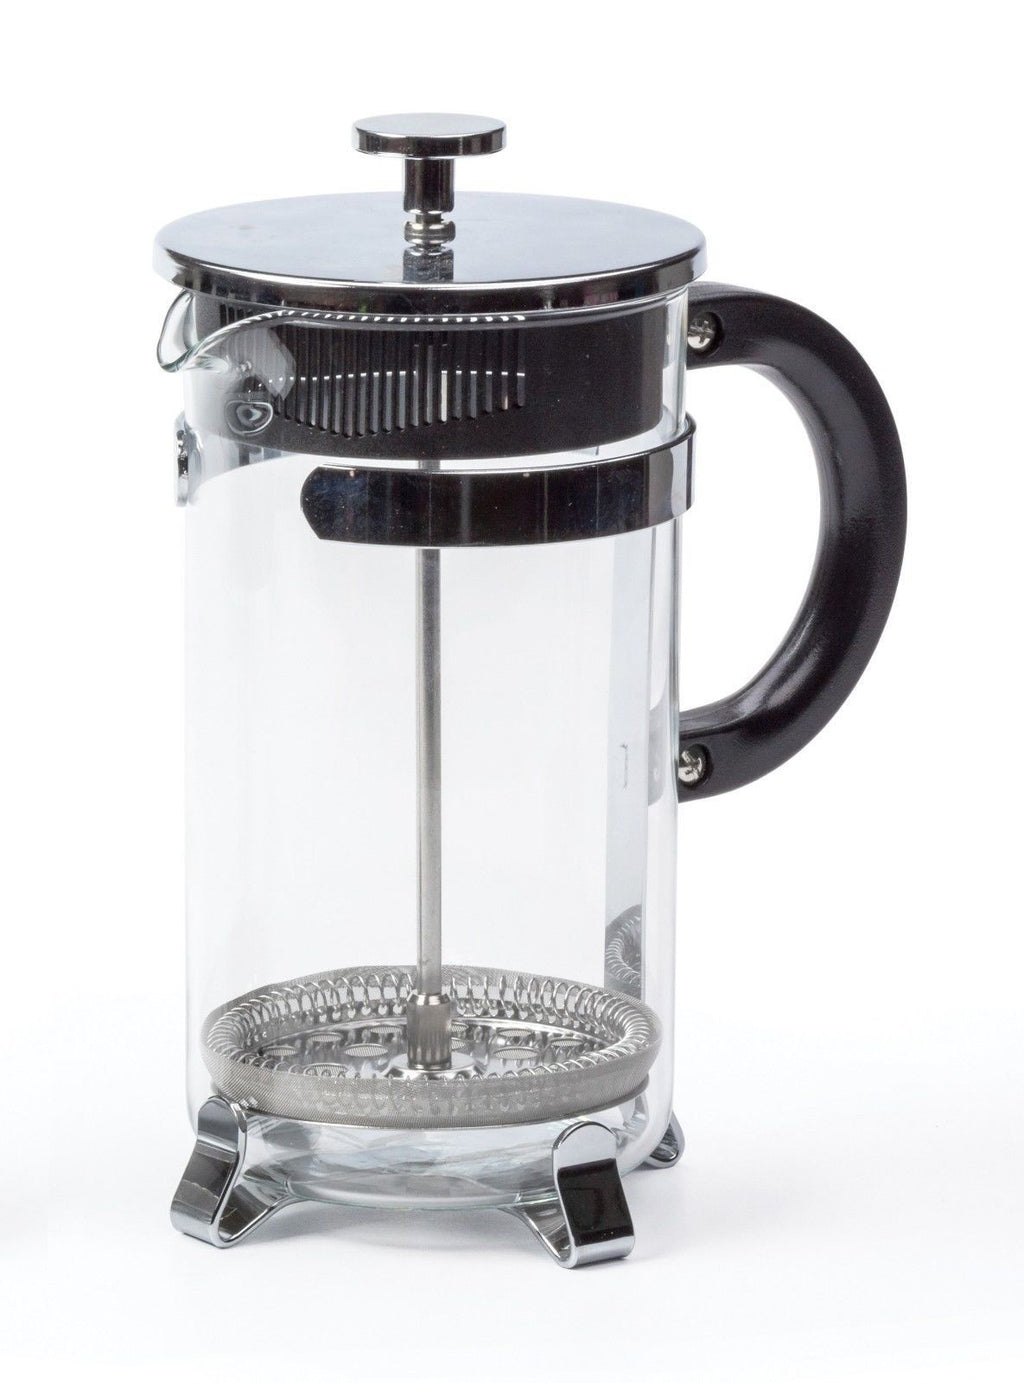 RSVP Endurance French Press - 8 Cup